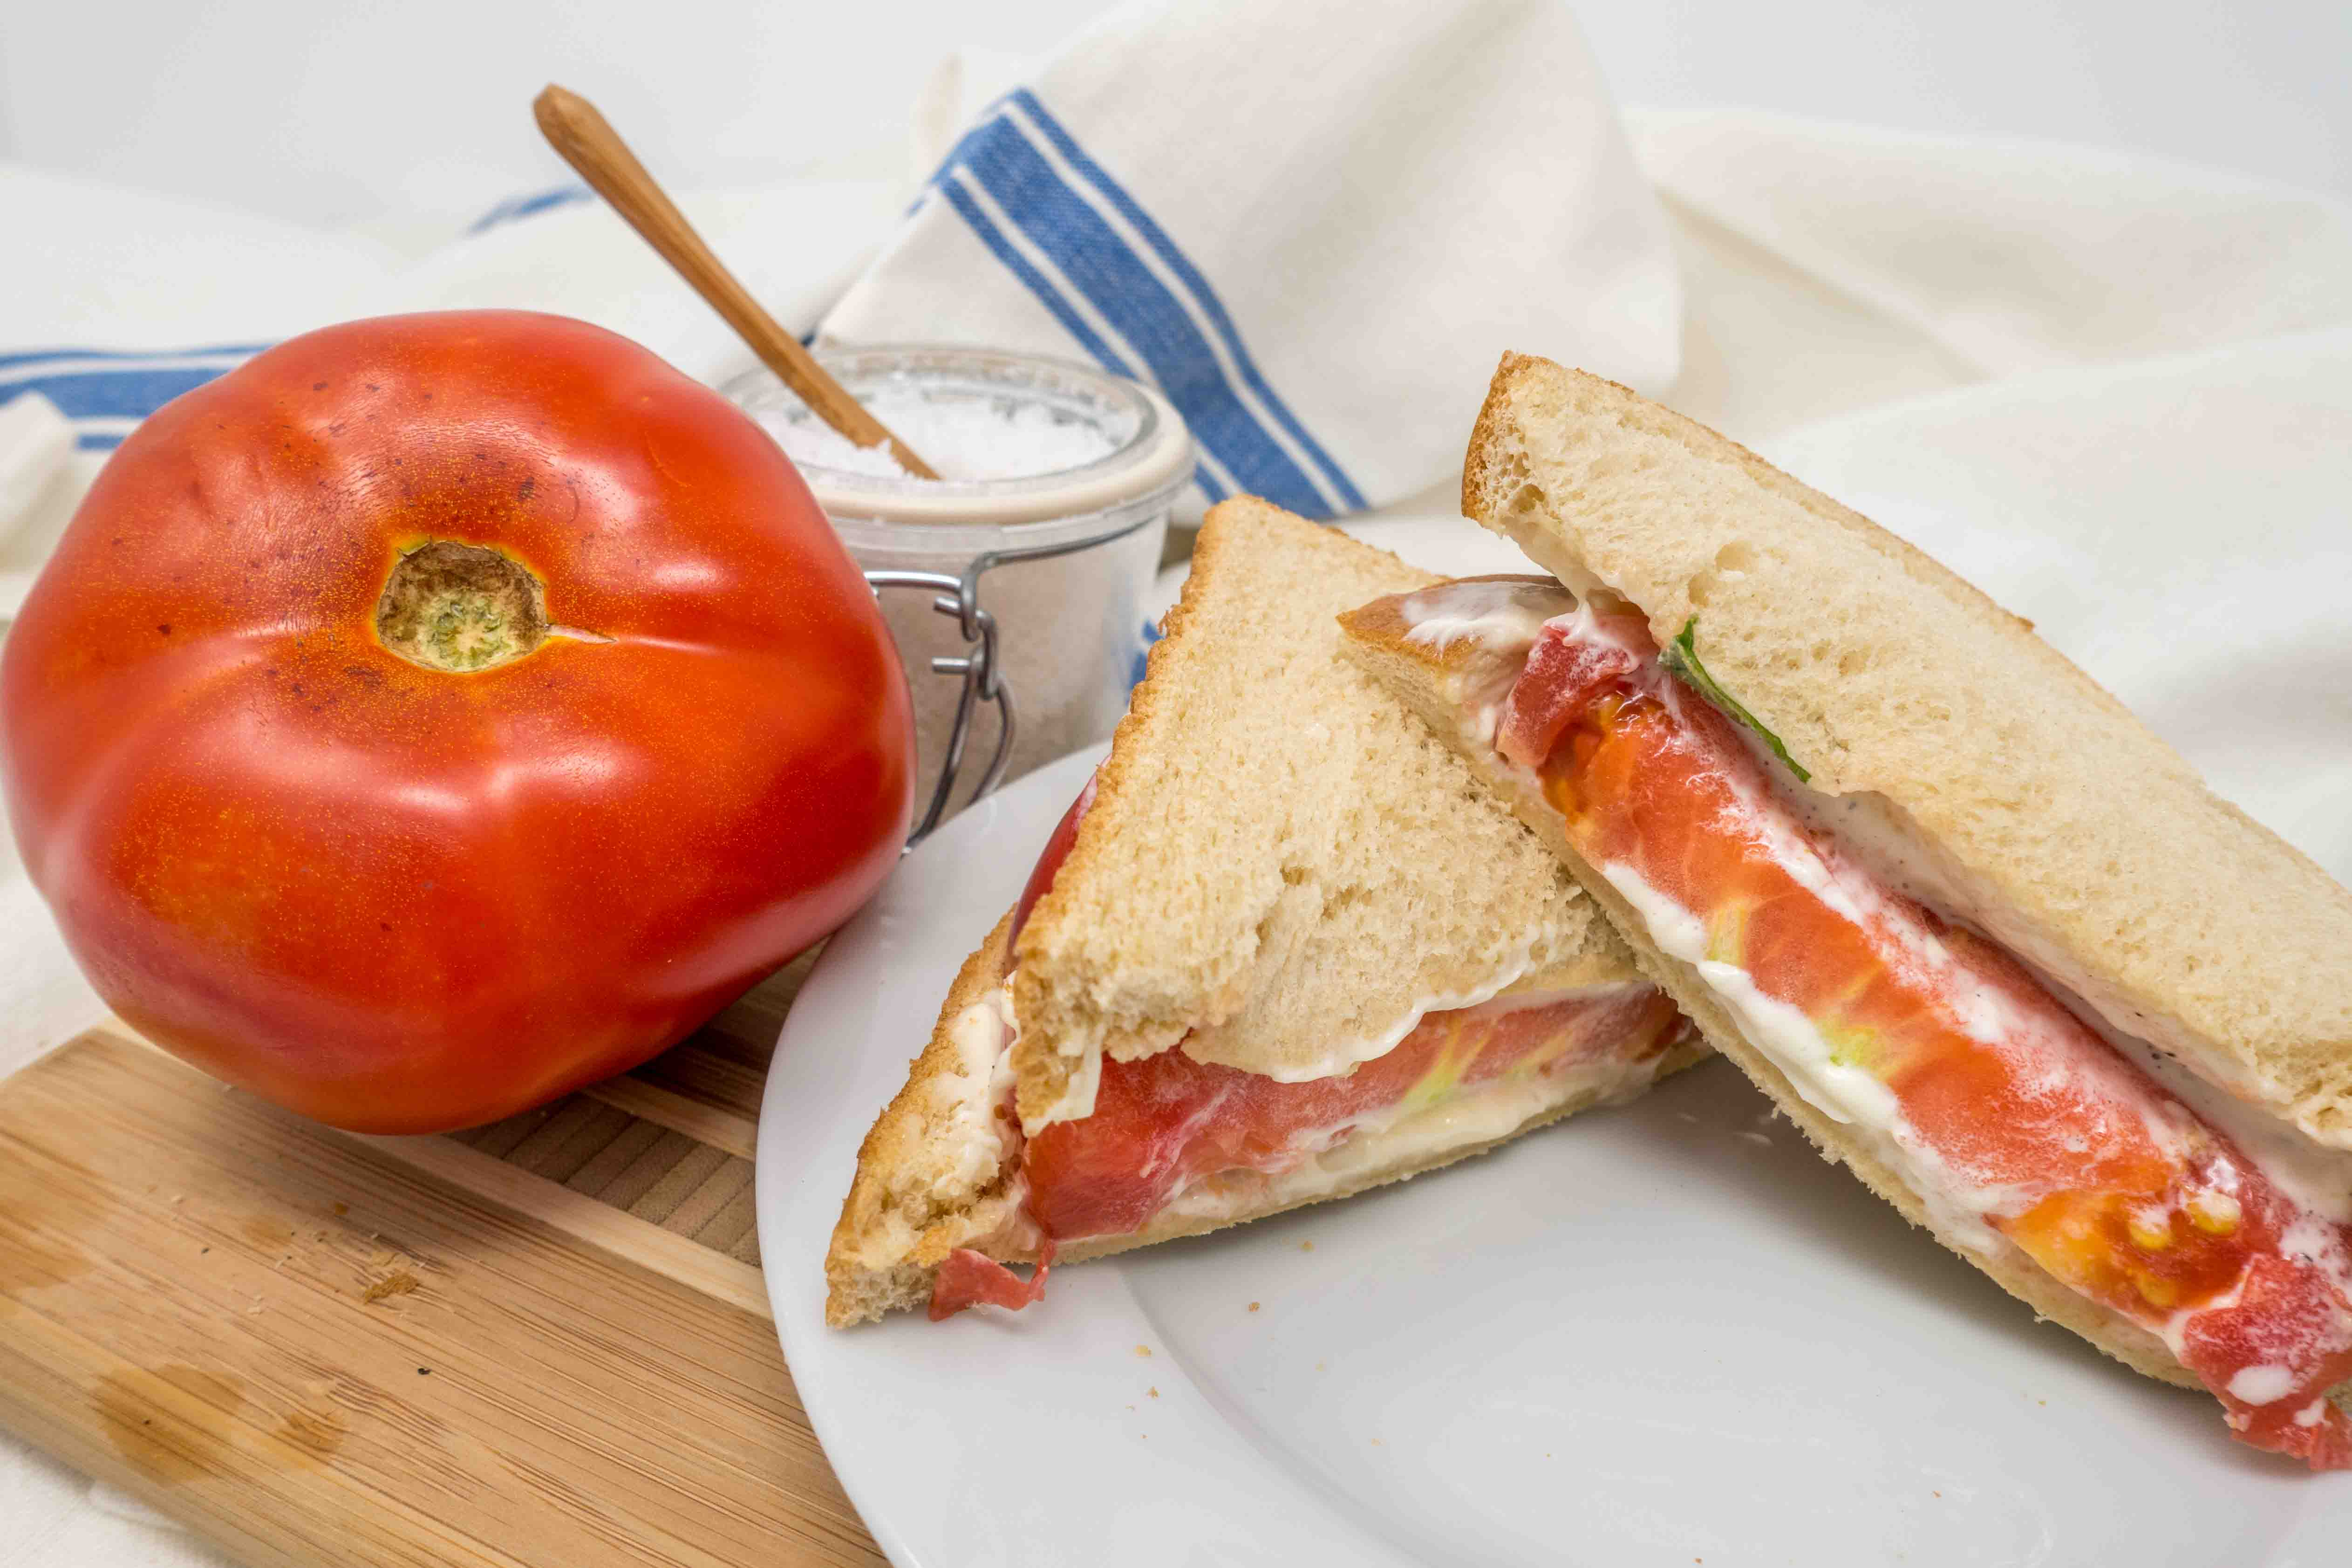 Southern tomato sandwiches are one of the best foods of summer